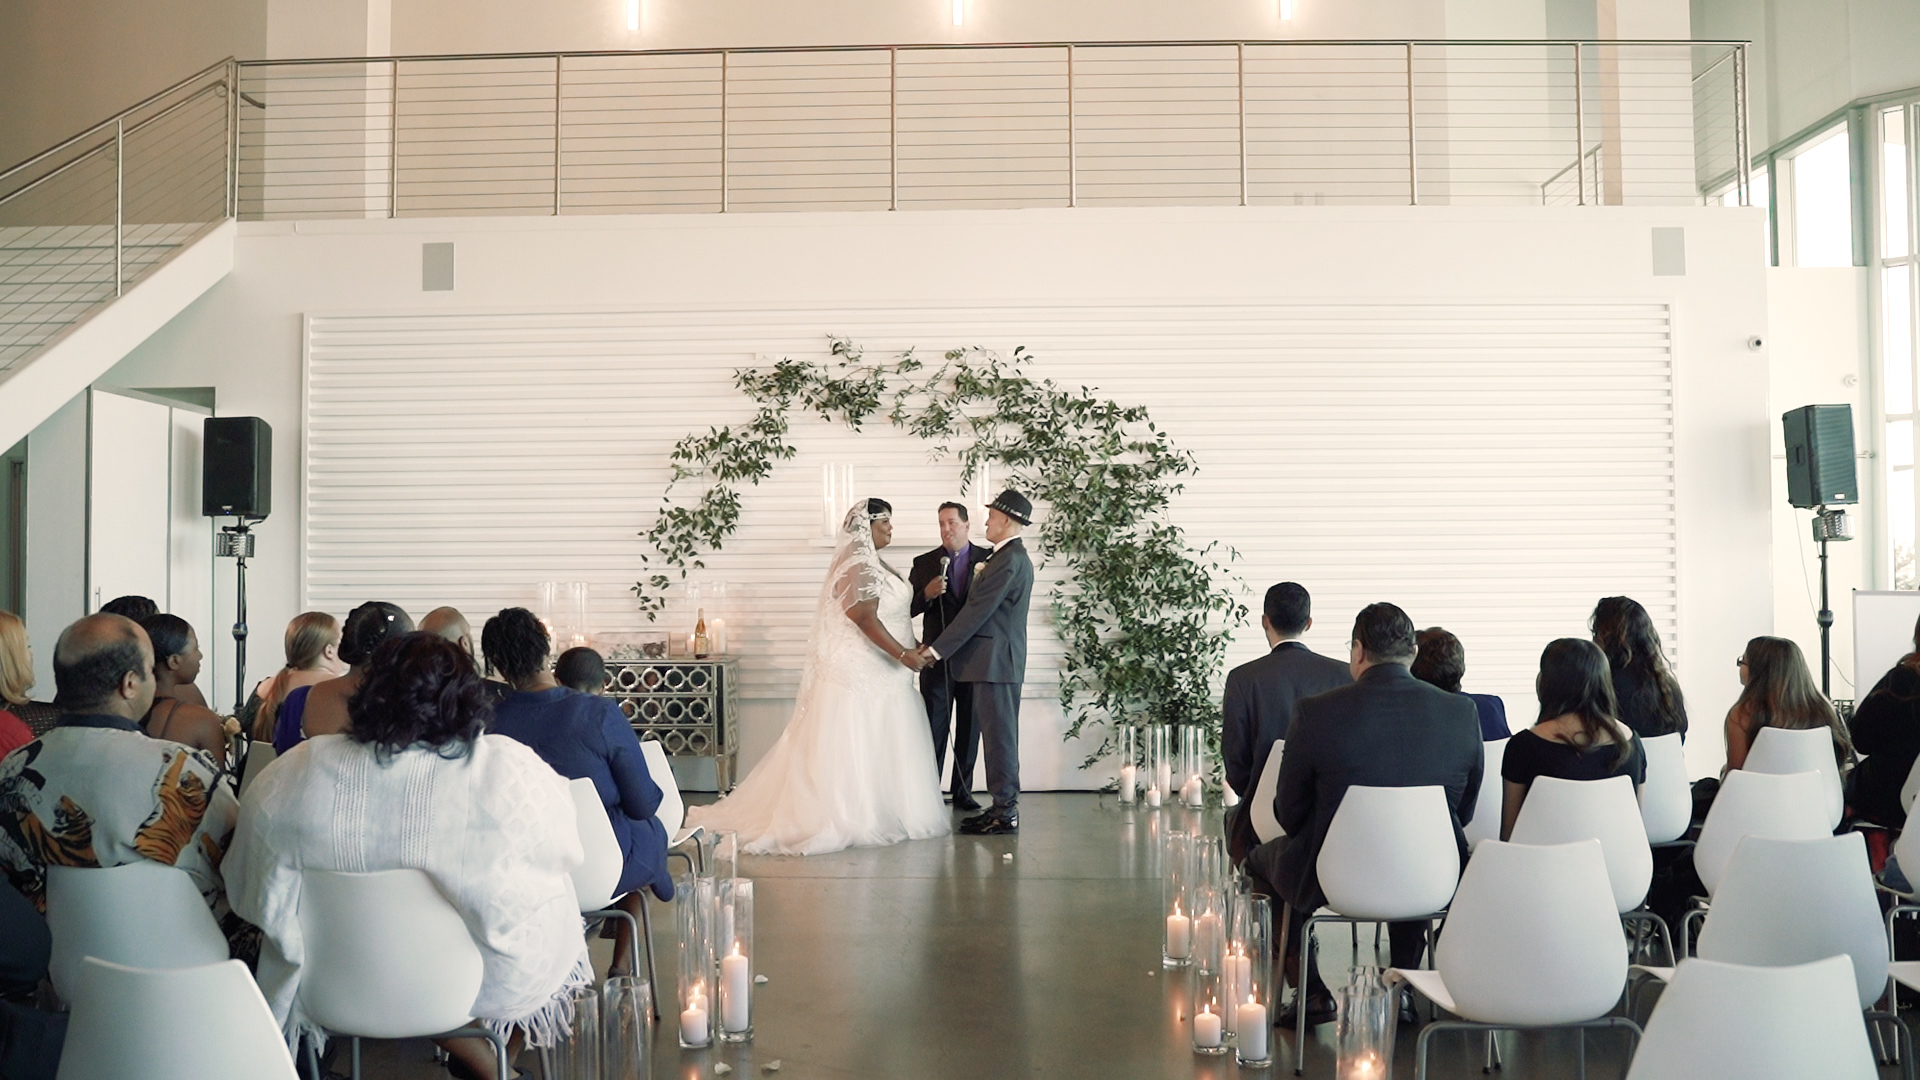 Kiletta + Gilbert | Long Beach, California | The Modern